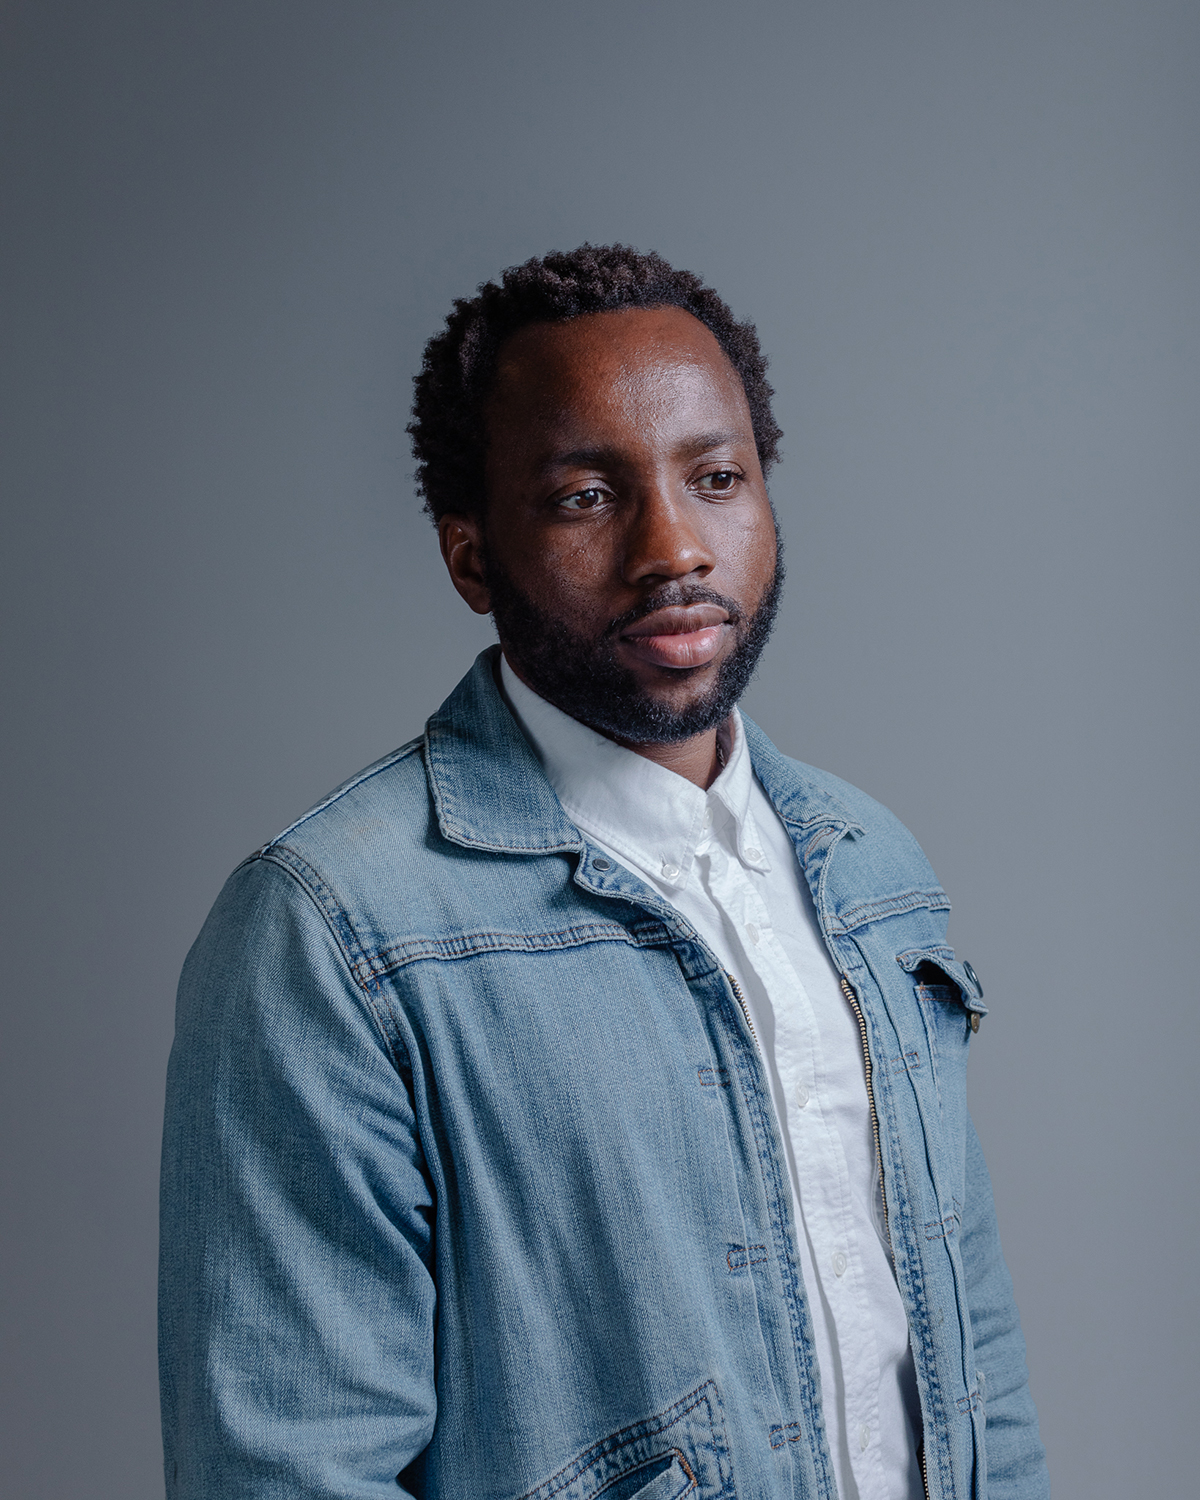 Tunde Wey at MOAD in San Francisco on May 19, 2018.